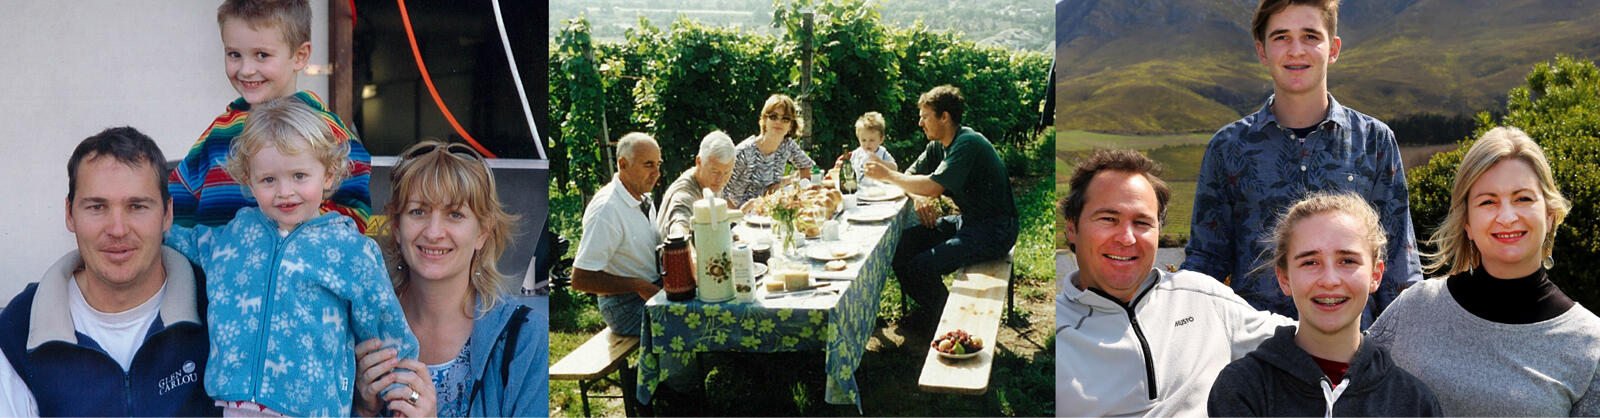 From left to right, the family in Grillette, Switzerland, lunch in the vineyards, the Martins at Creation, 2015